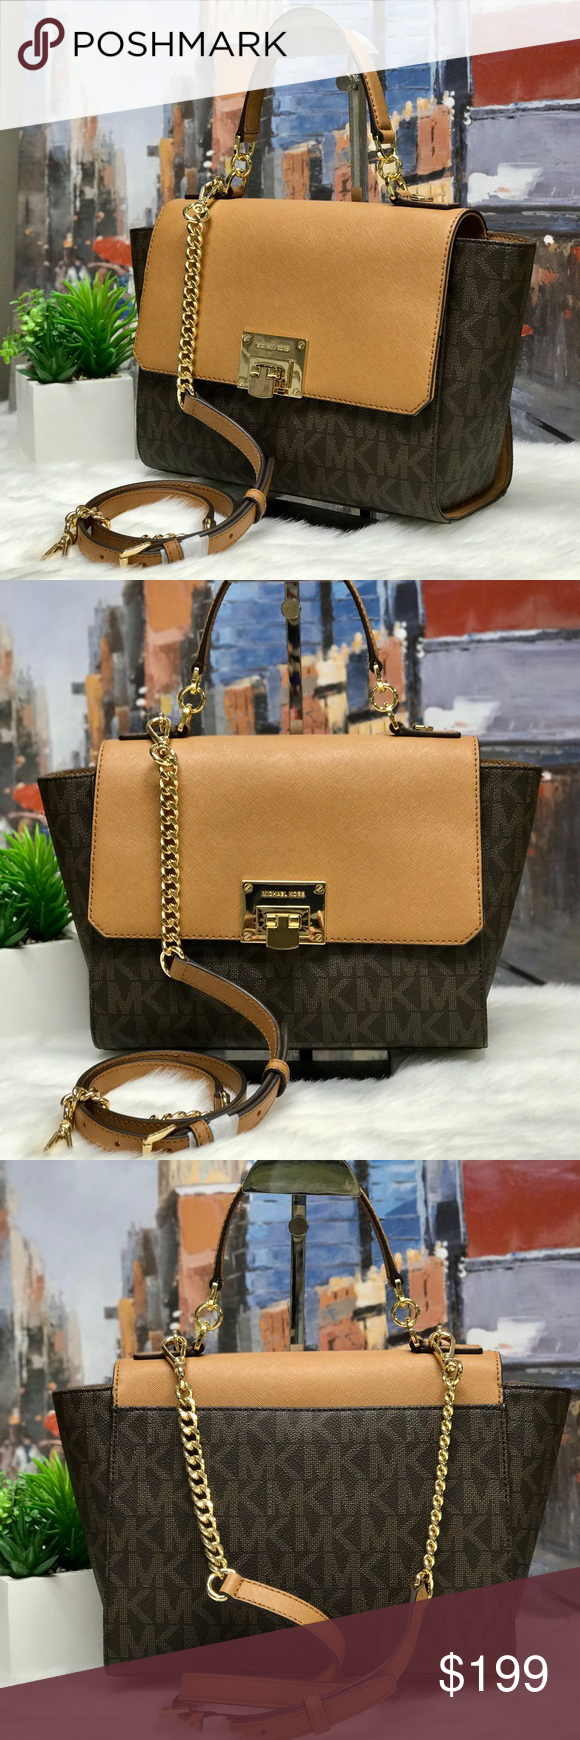 f8dd16b4db5f Michael Kors Tina Medium Satchel Color: Brown/Acorn MK Signature PVC w/  Saffiano